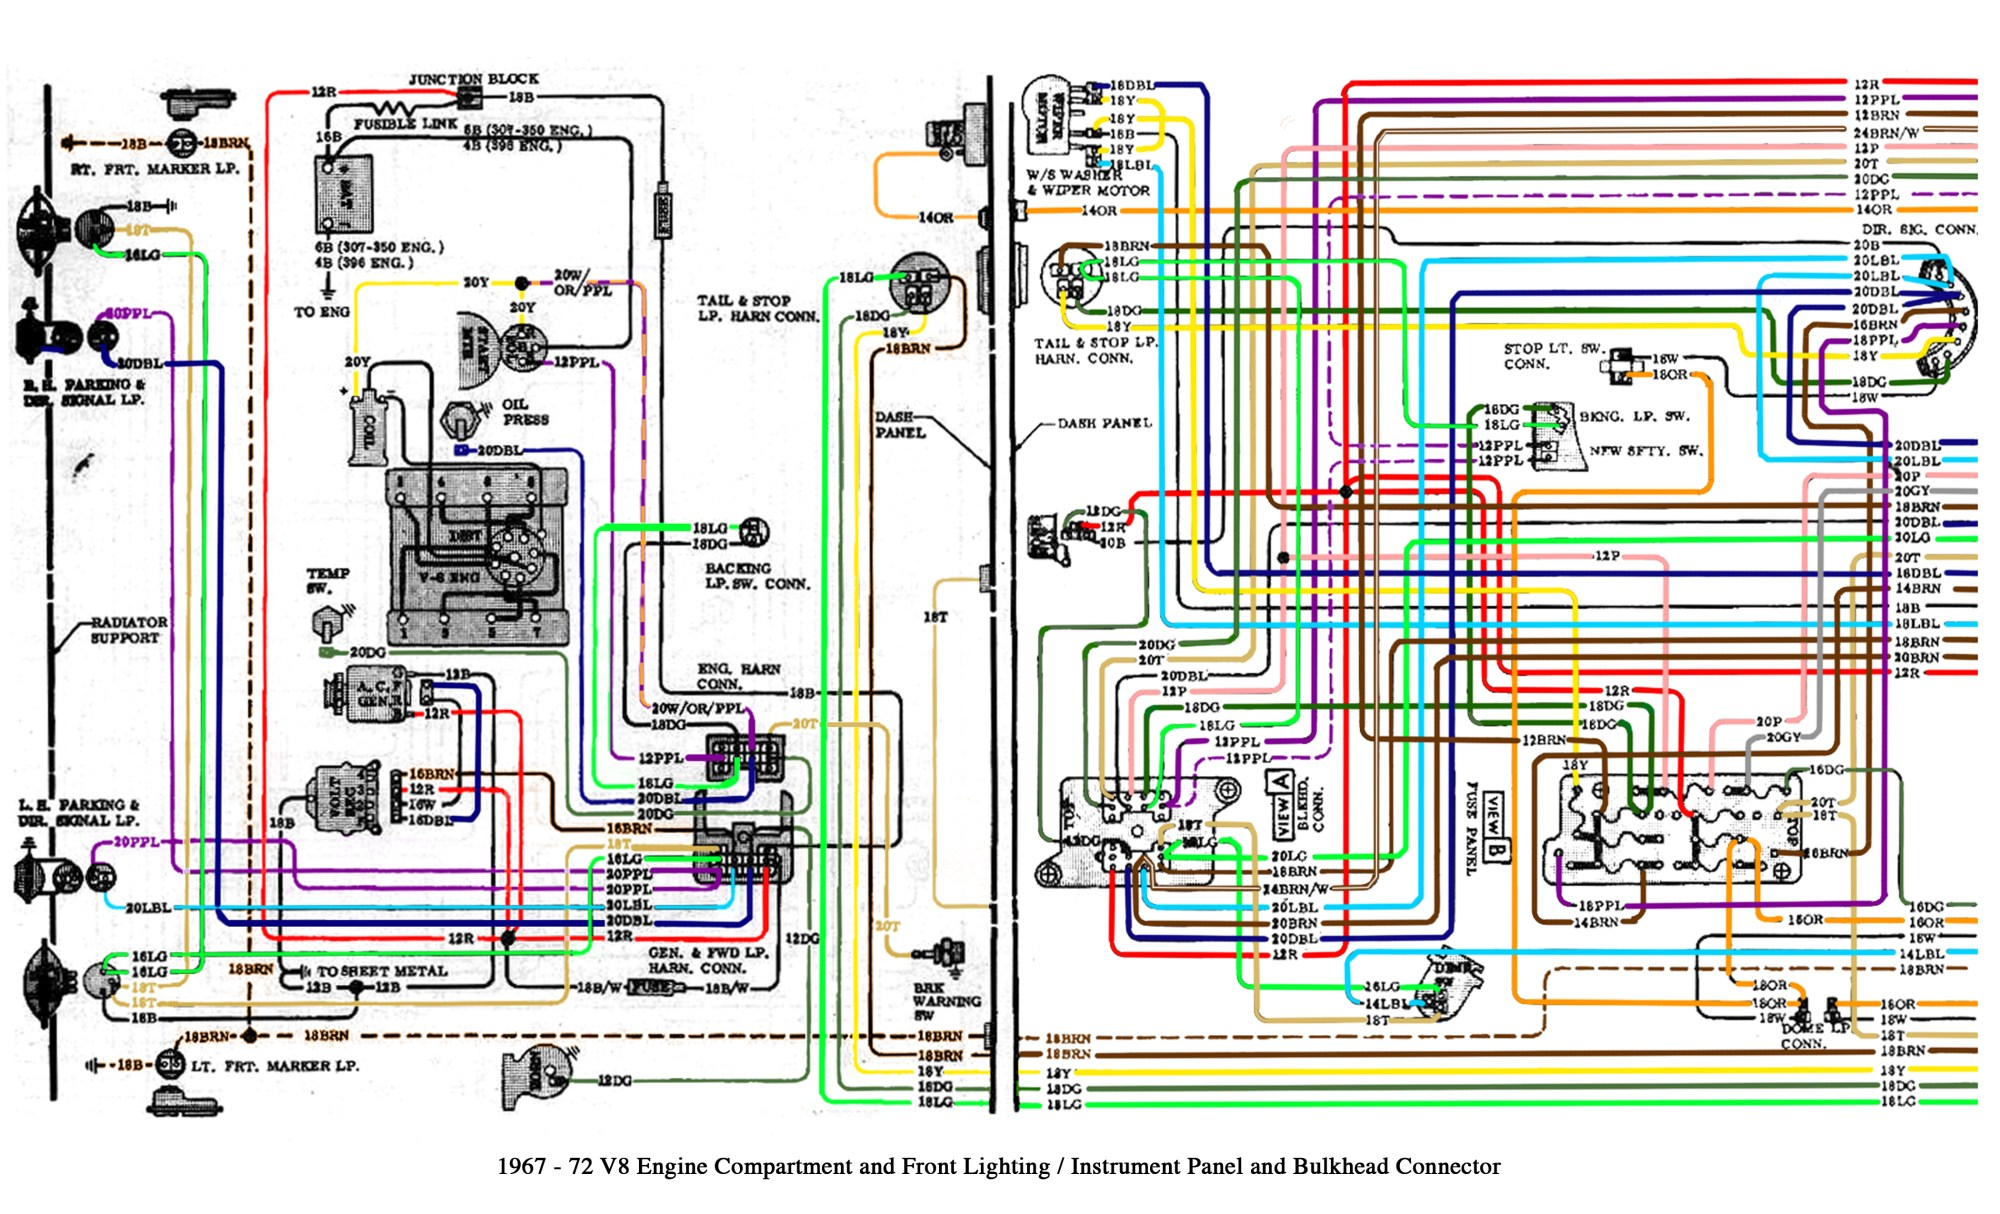 hight resolution of 86 s15 wiring diagram wiring library 3 way switch light wiring diagram 1975 gmc fuse